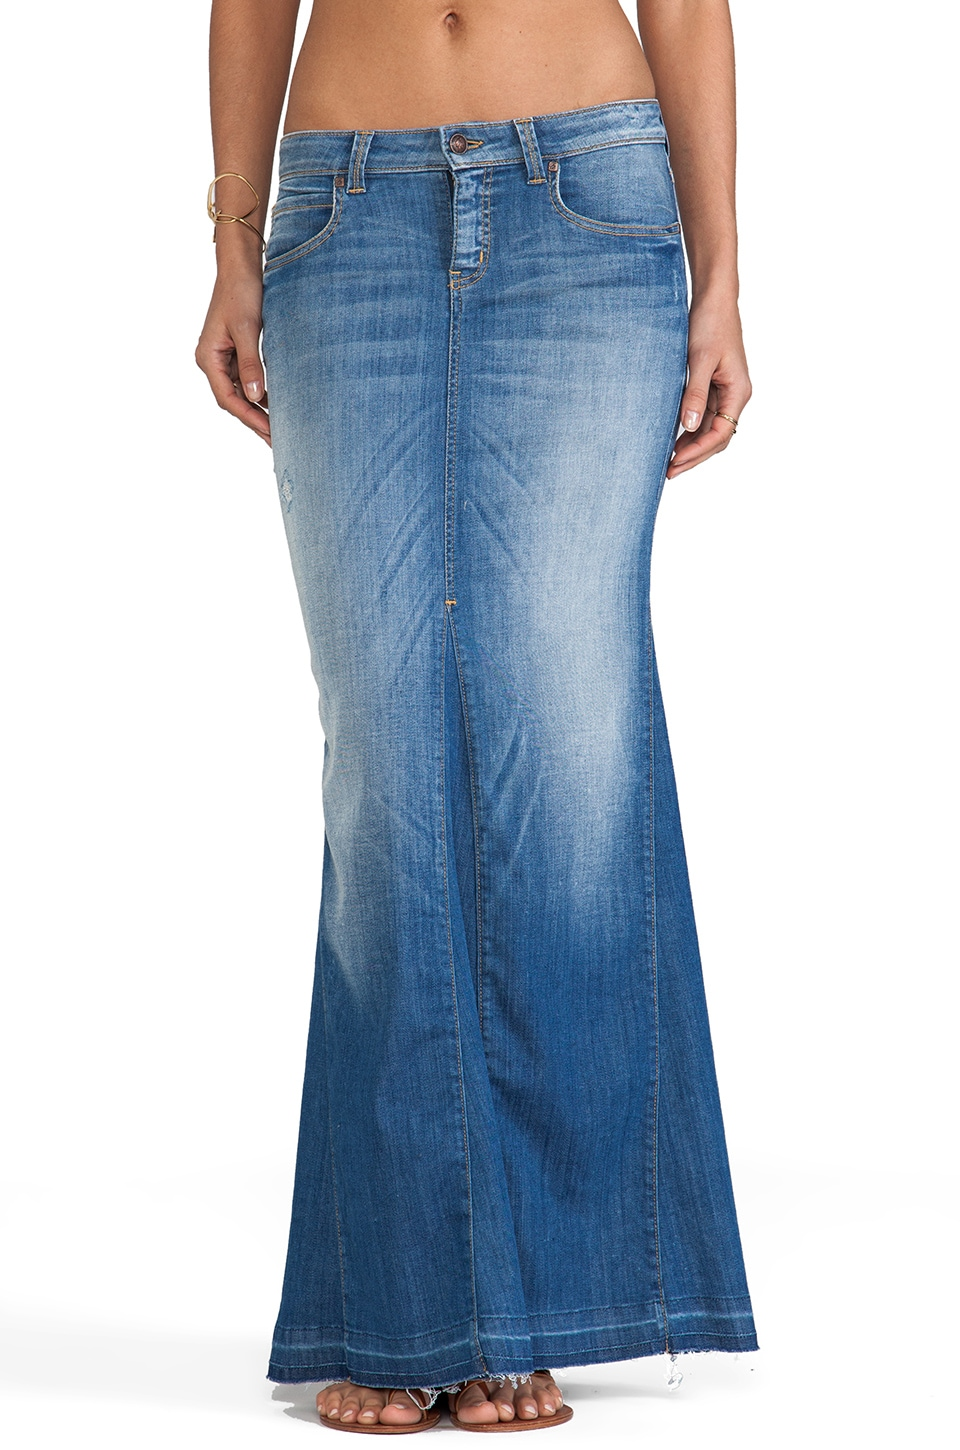 Frankie B. Jeans Astral Maxi Skirt in Lover Blue